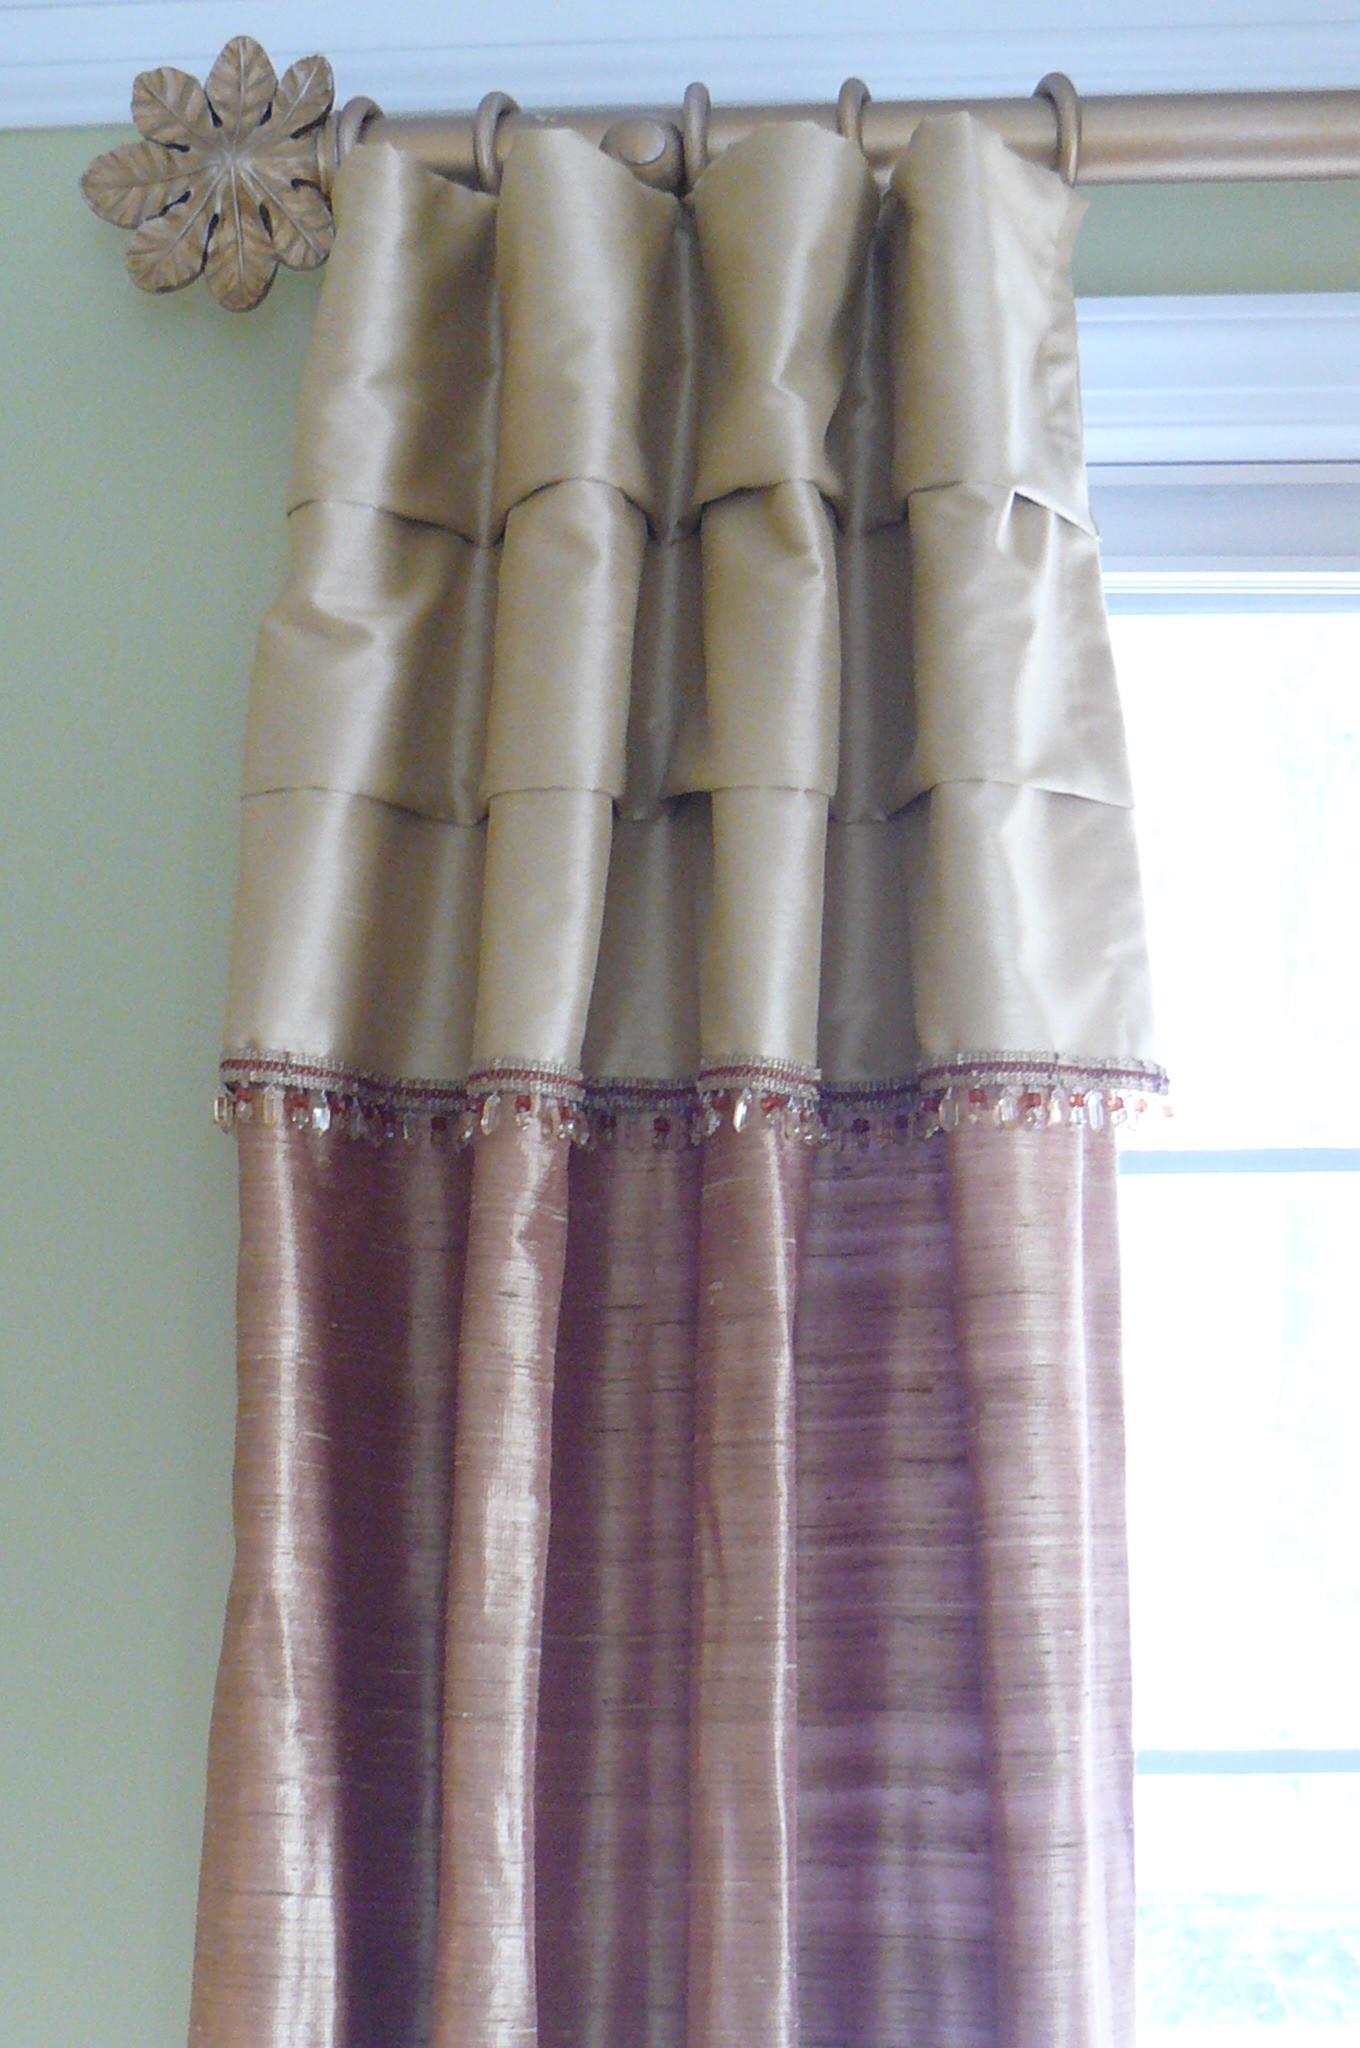 Silk panel with attached valance and bead trim on decorative for living room area